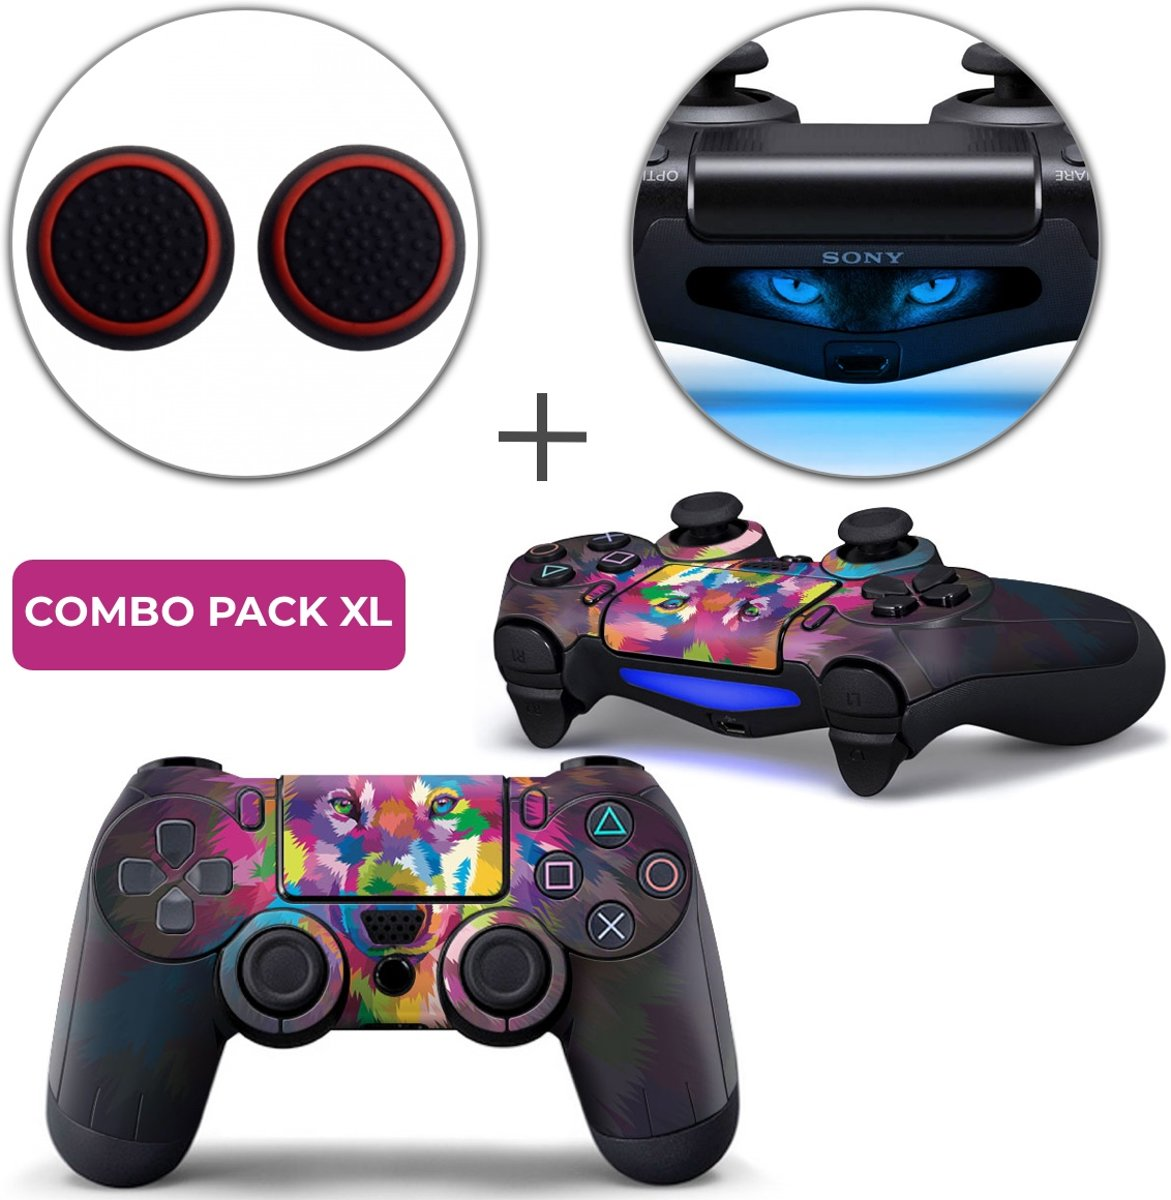 Color Wolf Combo Pack XL - PS4 Controller Skins PlayStation Stickers + Thumb Grips + Lightbar Skin Sticker